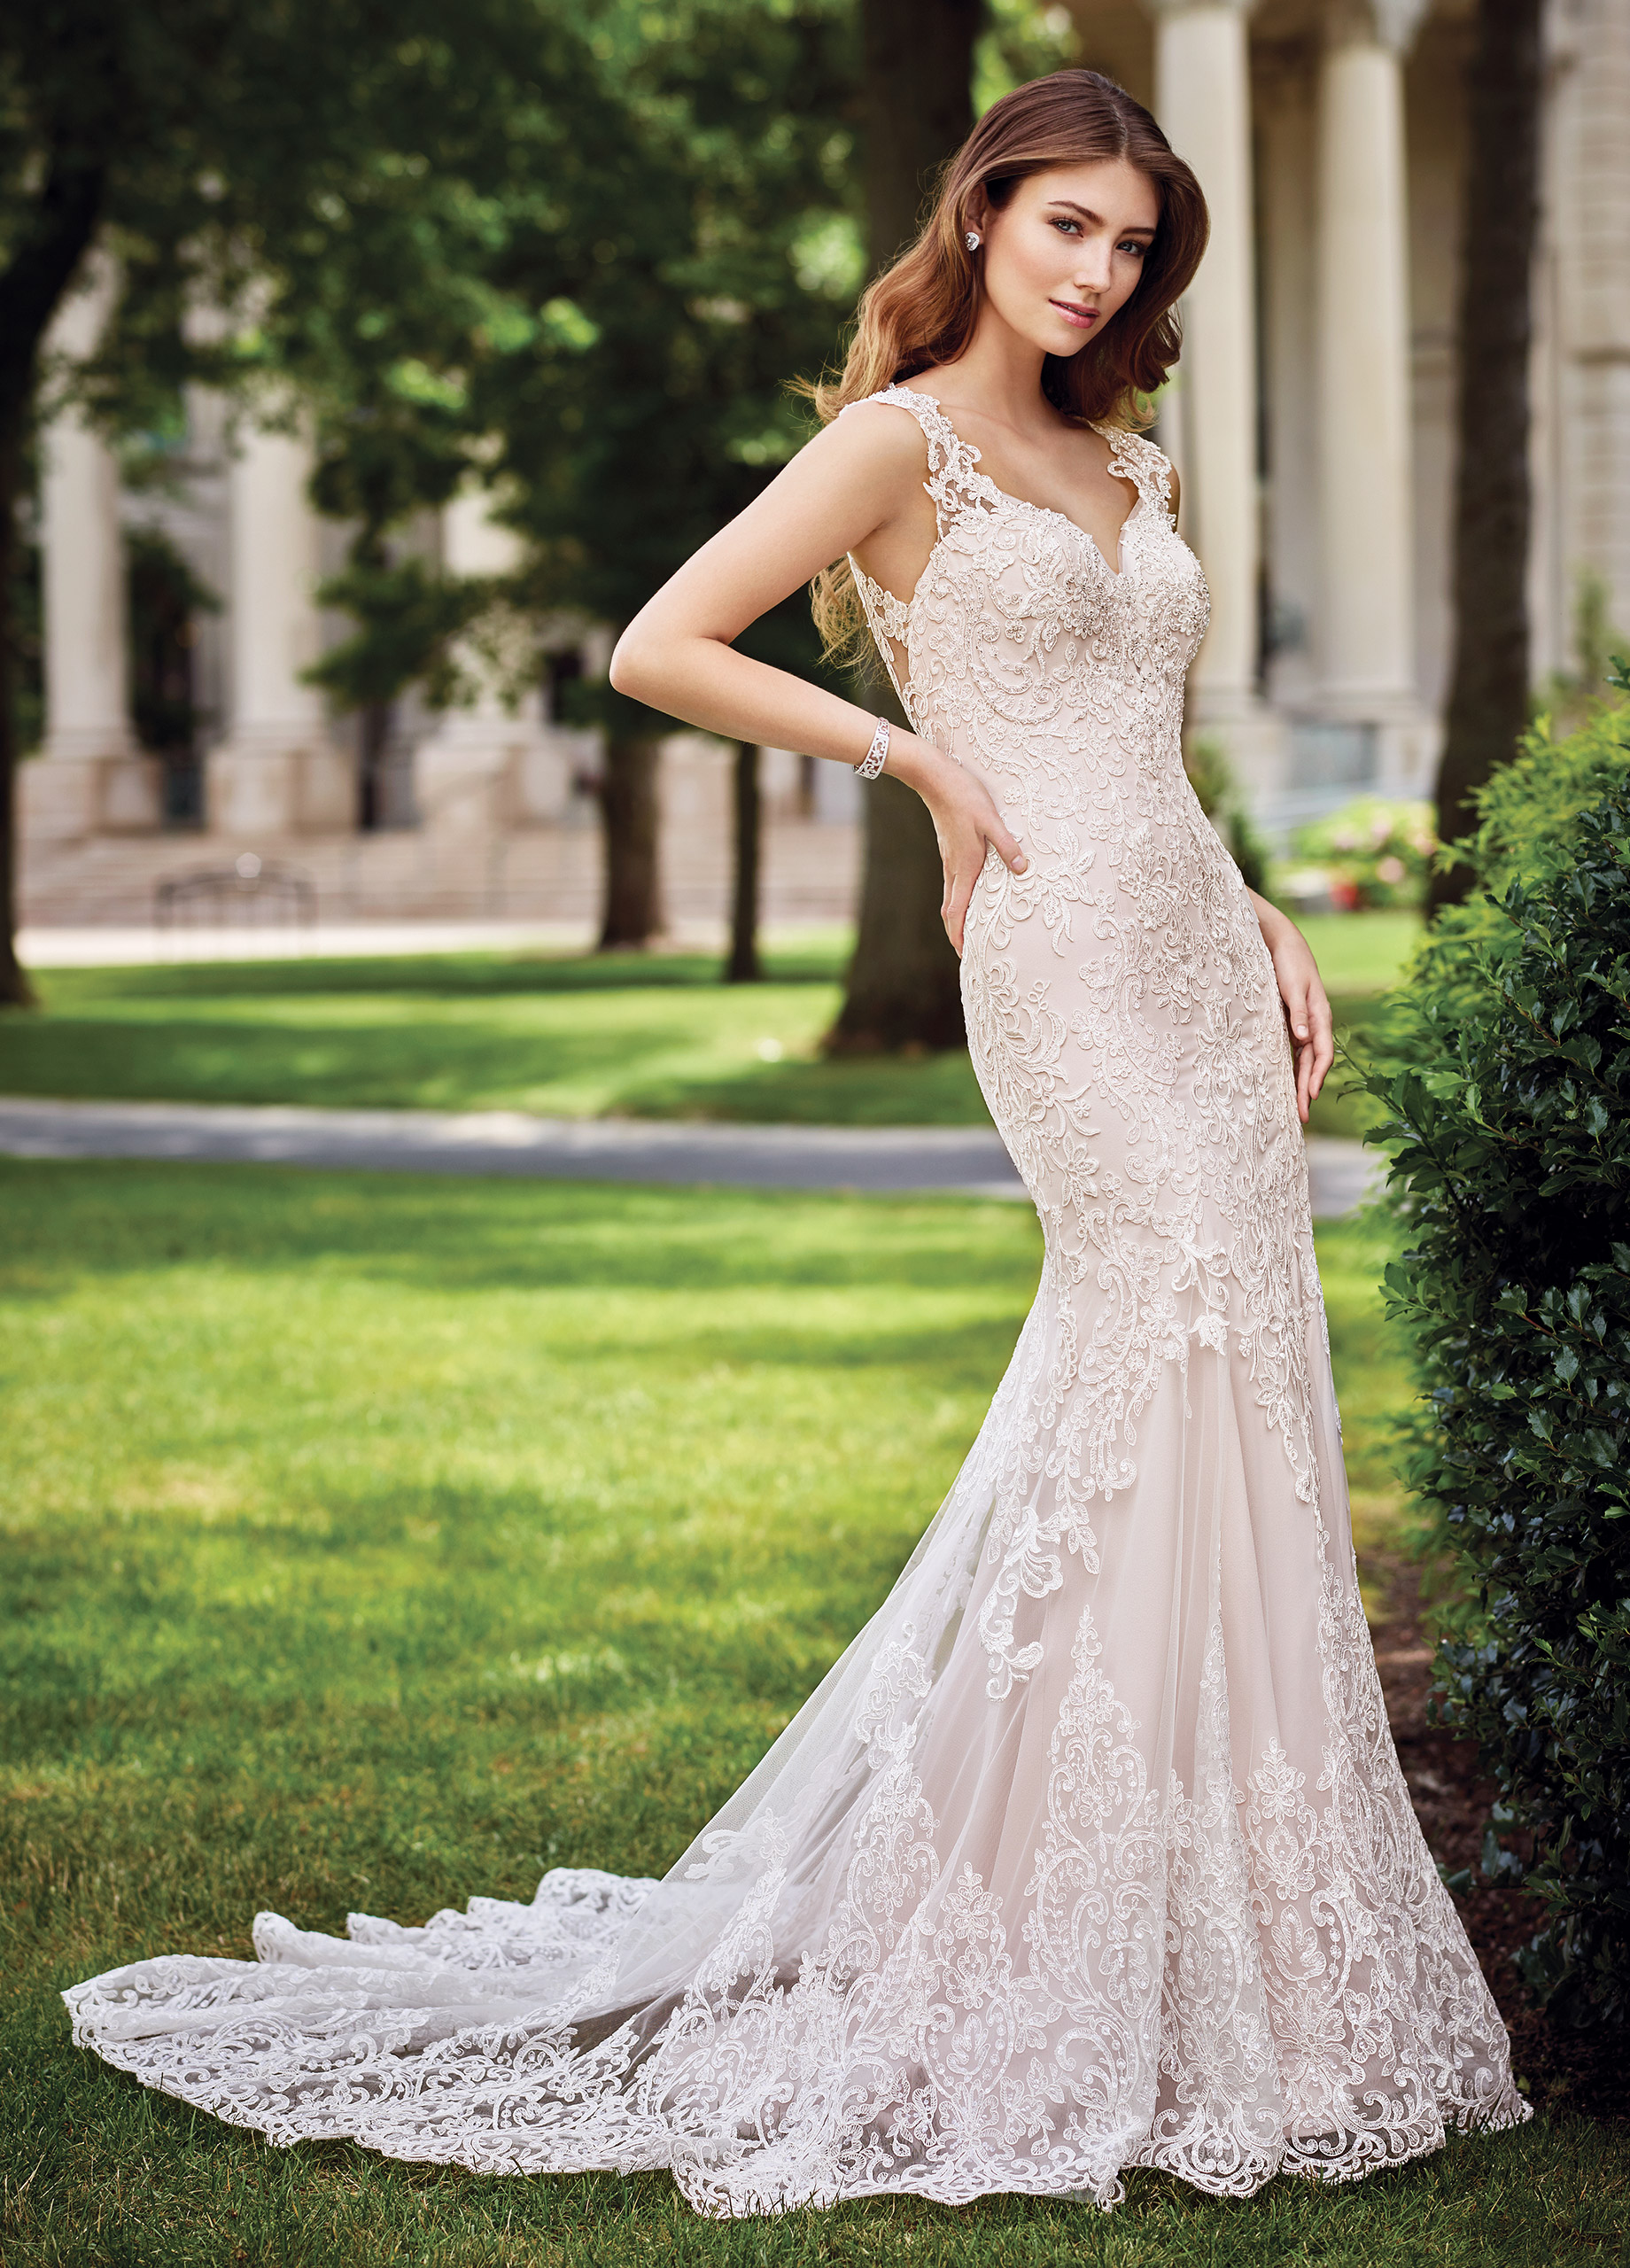 1b9e2316dea Re-embroidered Alençon lace on tulle over soft satin sheath with hand-beaded  illusion lace cap sleeves